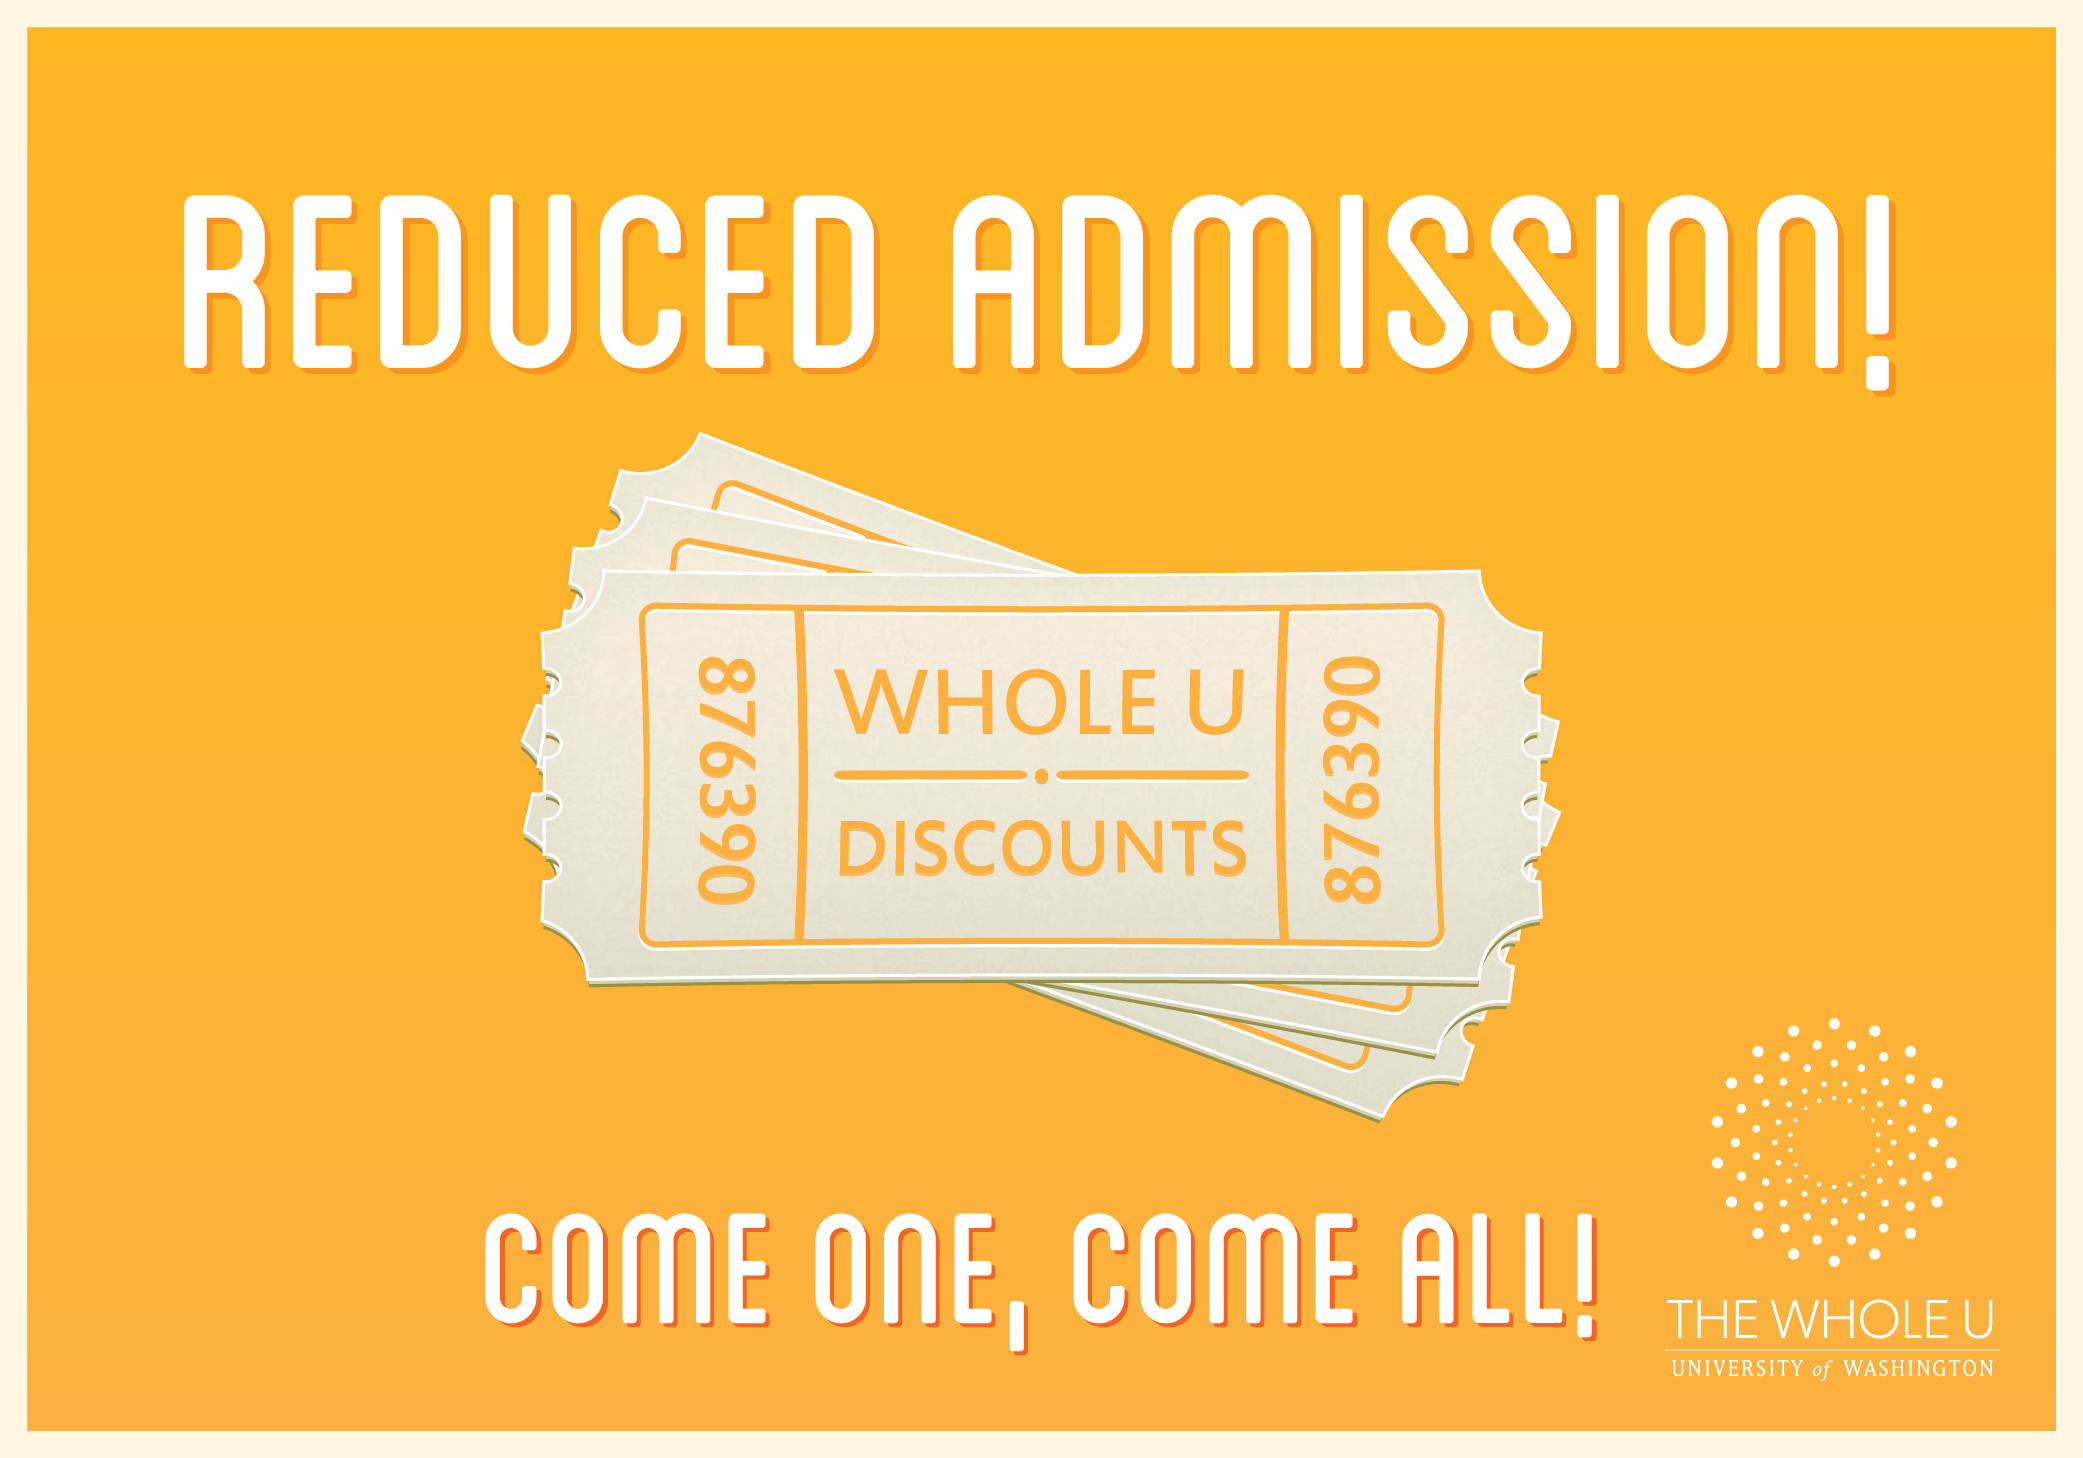 uw faculty and staff discounts